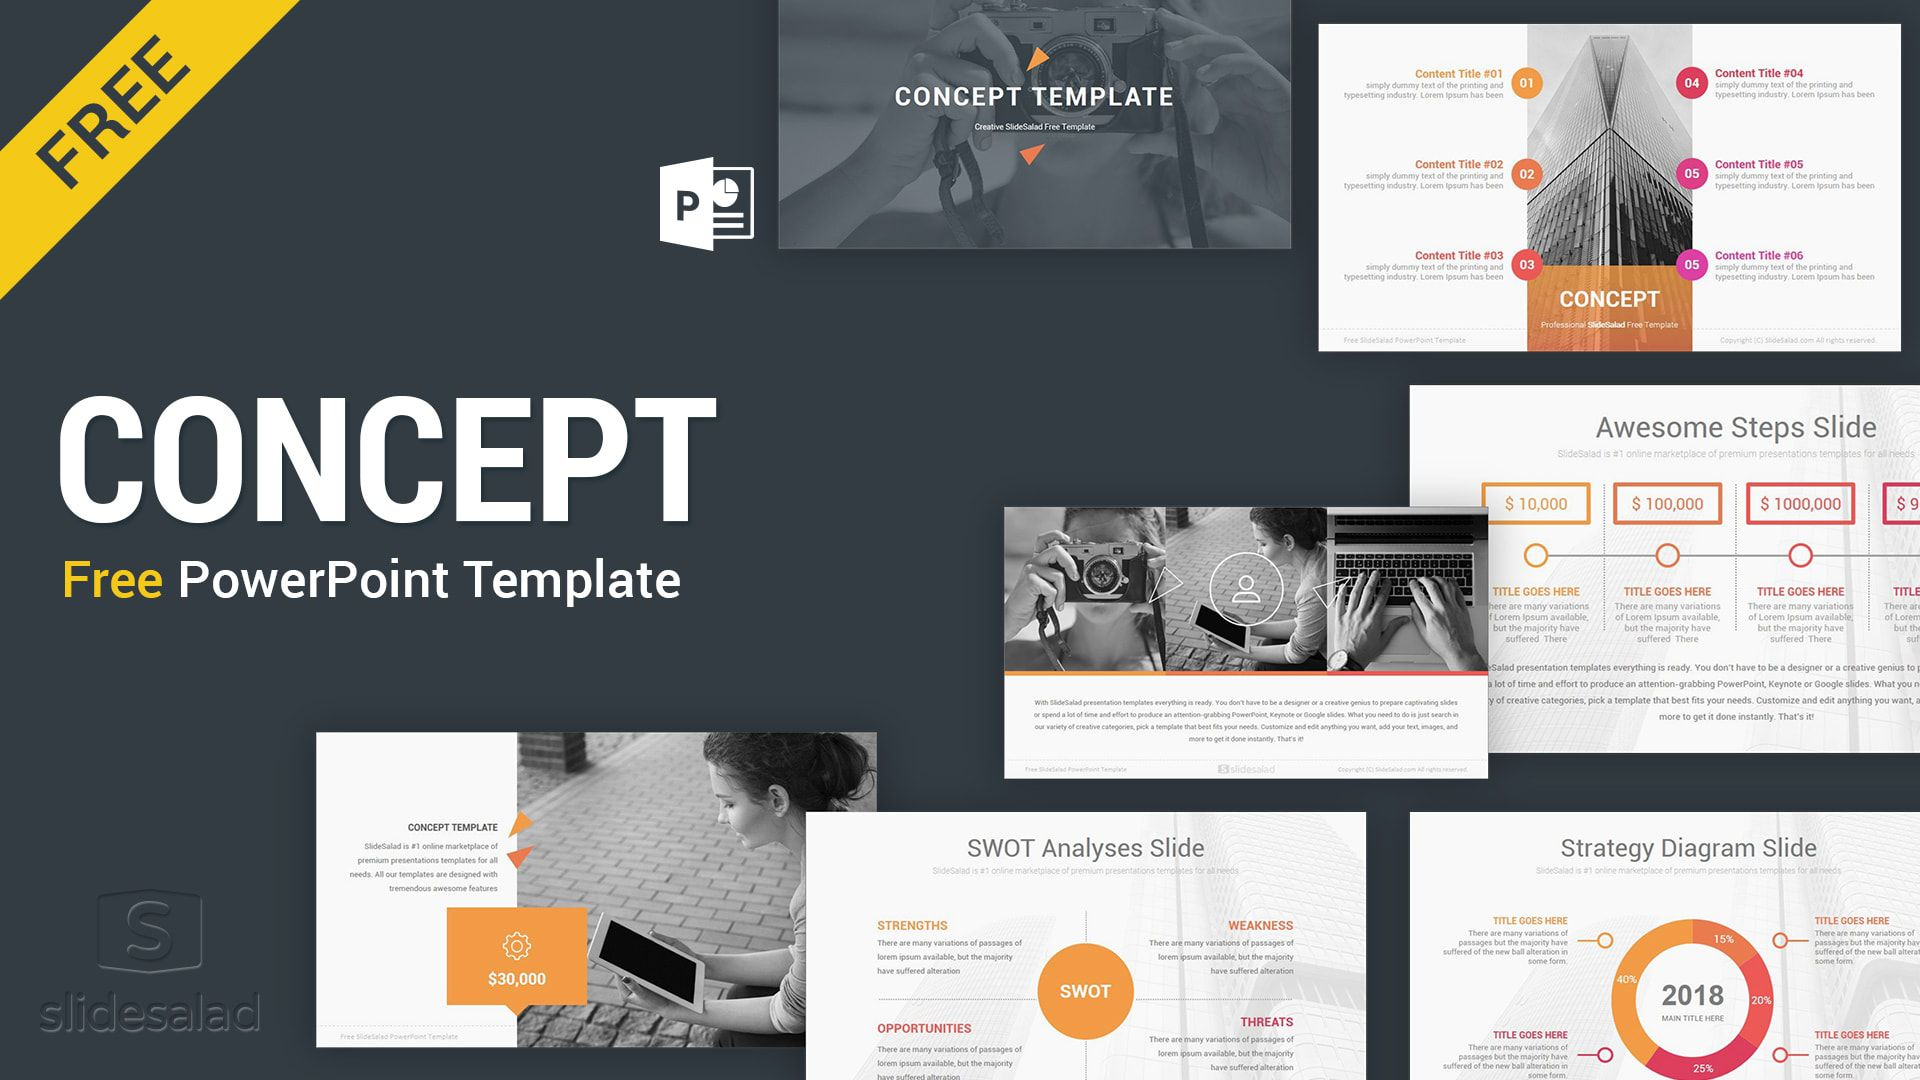 002 Singular Download Free Powerpoint Template Highest Quality  Templates Professional 2018 Ppt For Busines Presentation Education /Full